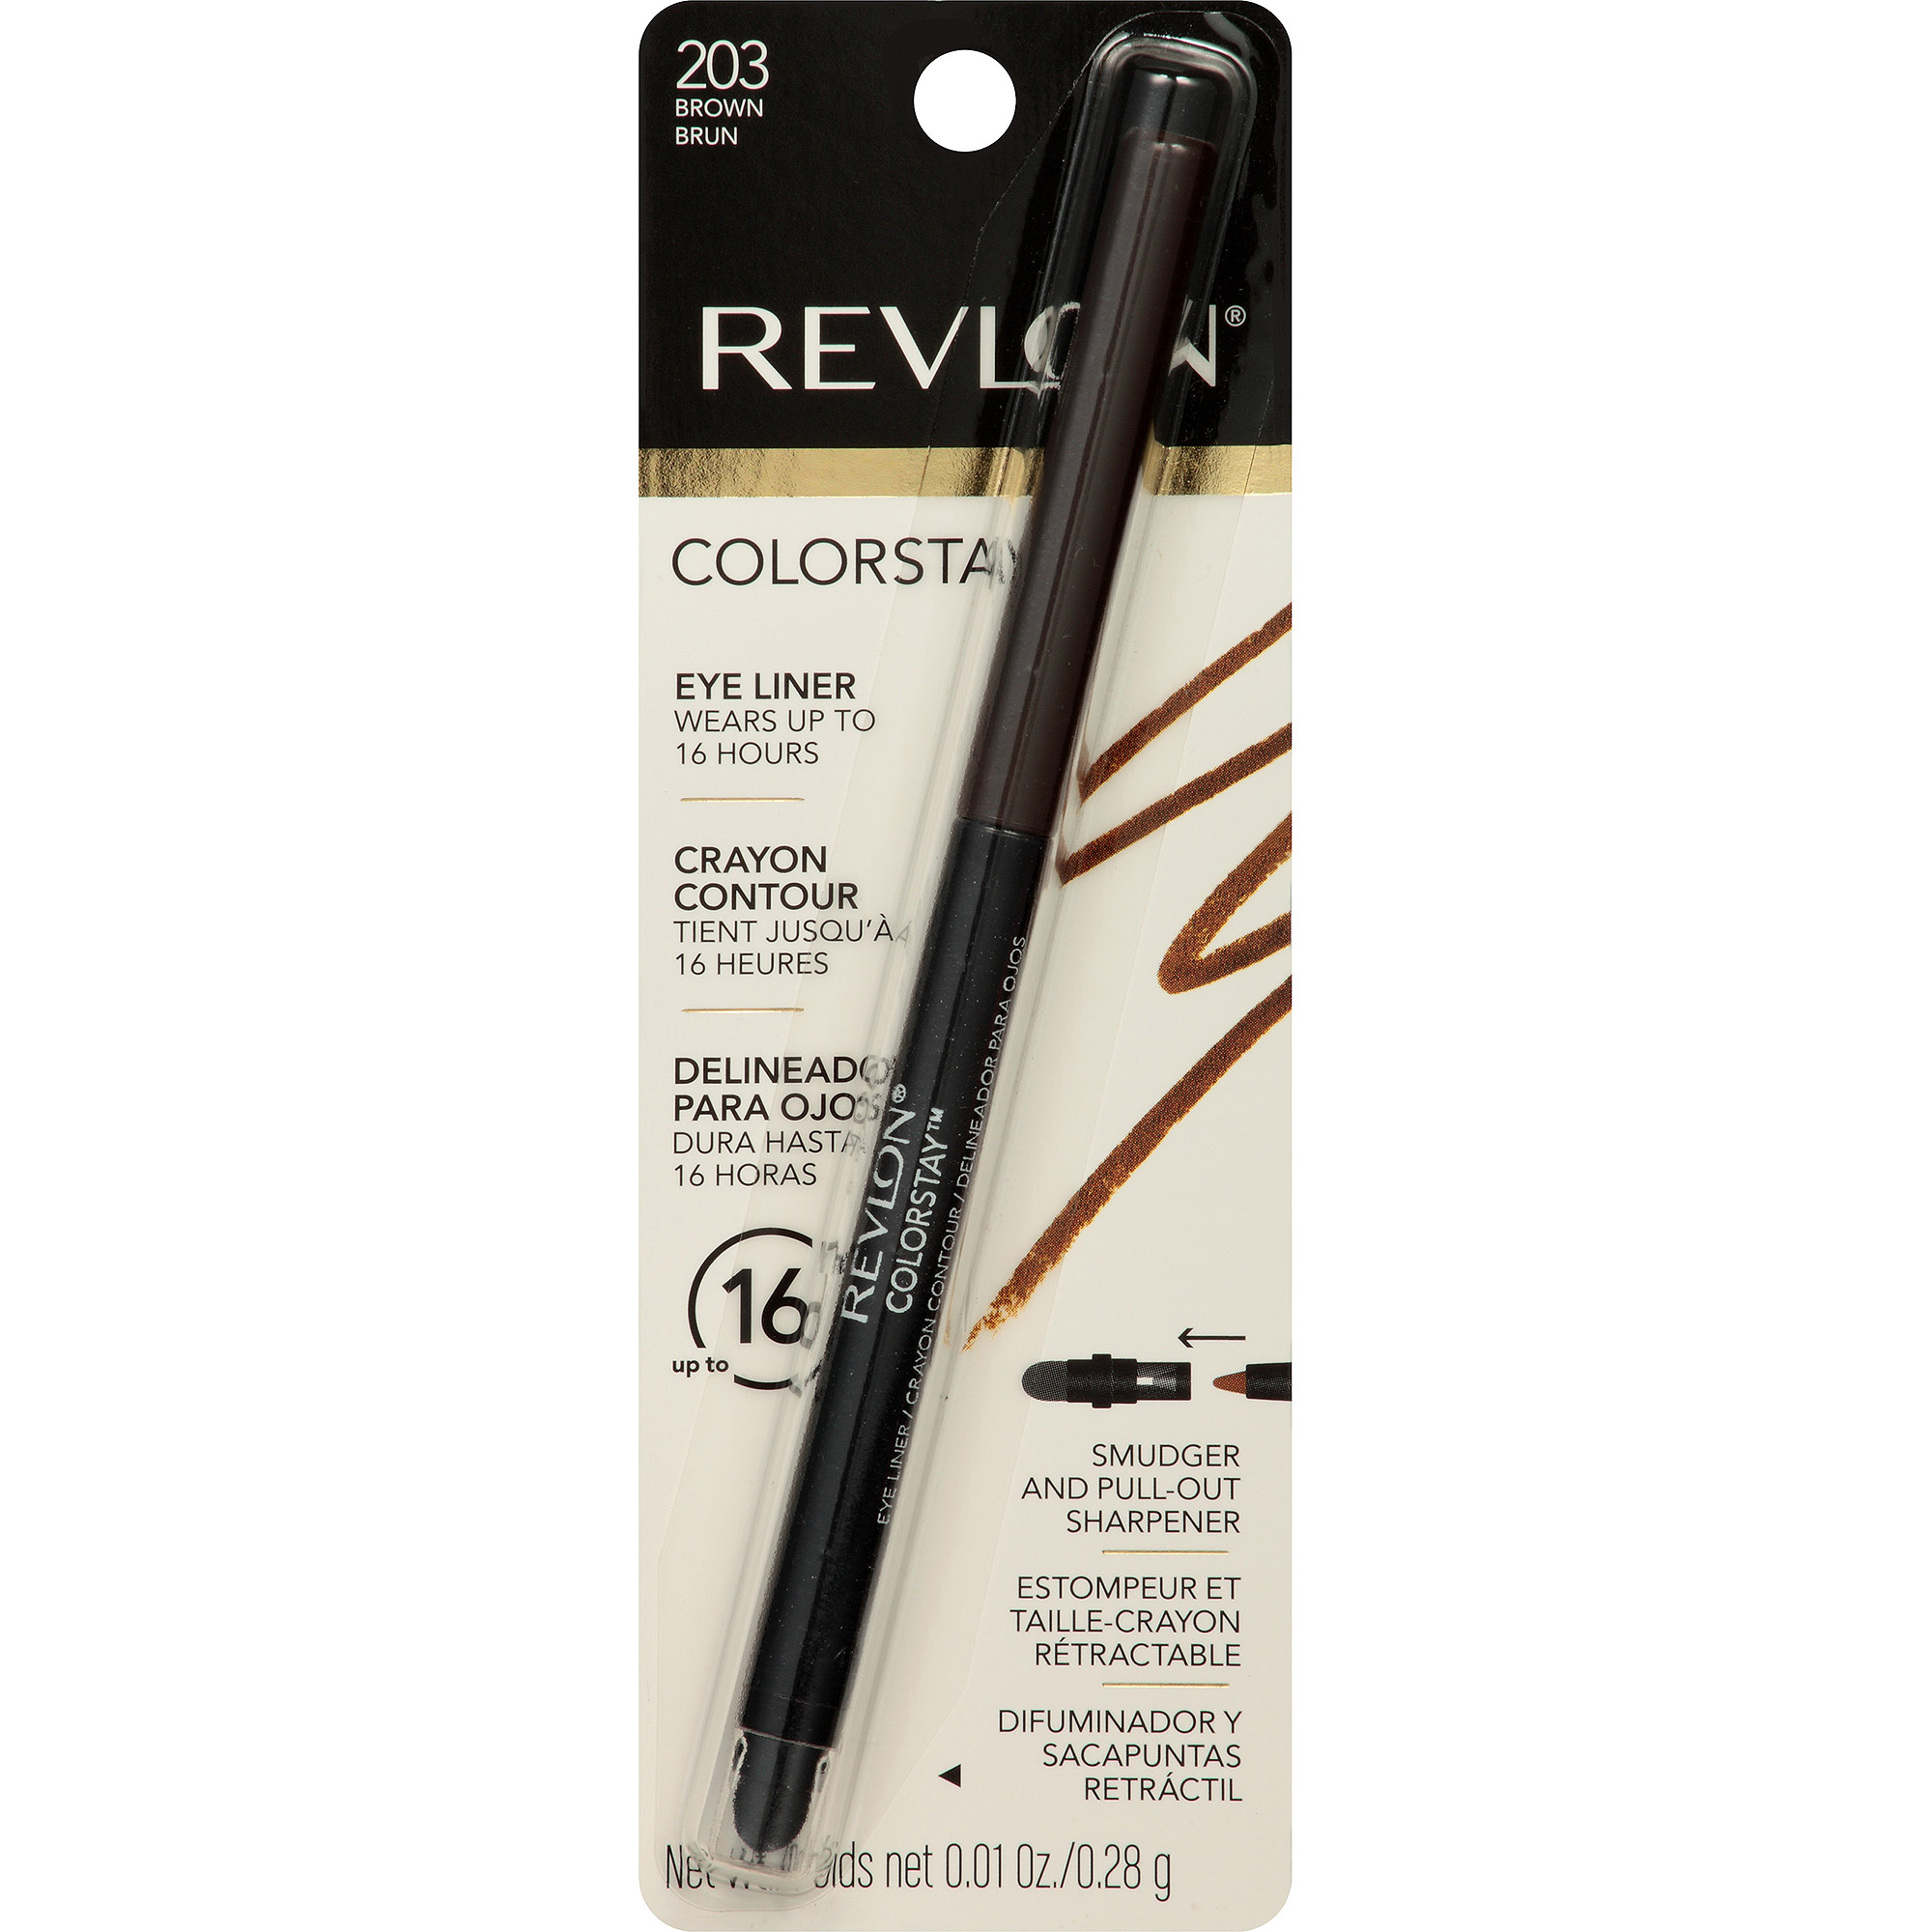 Revlon ColorStay Eyeliner, 203 Brown, 0.01 oz